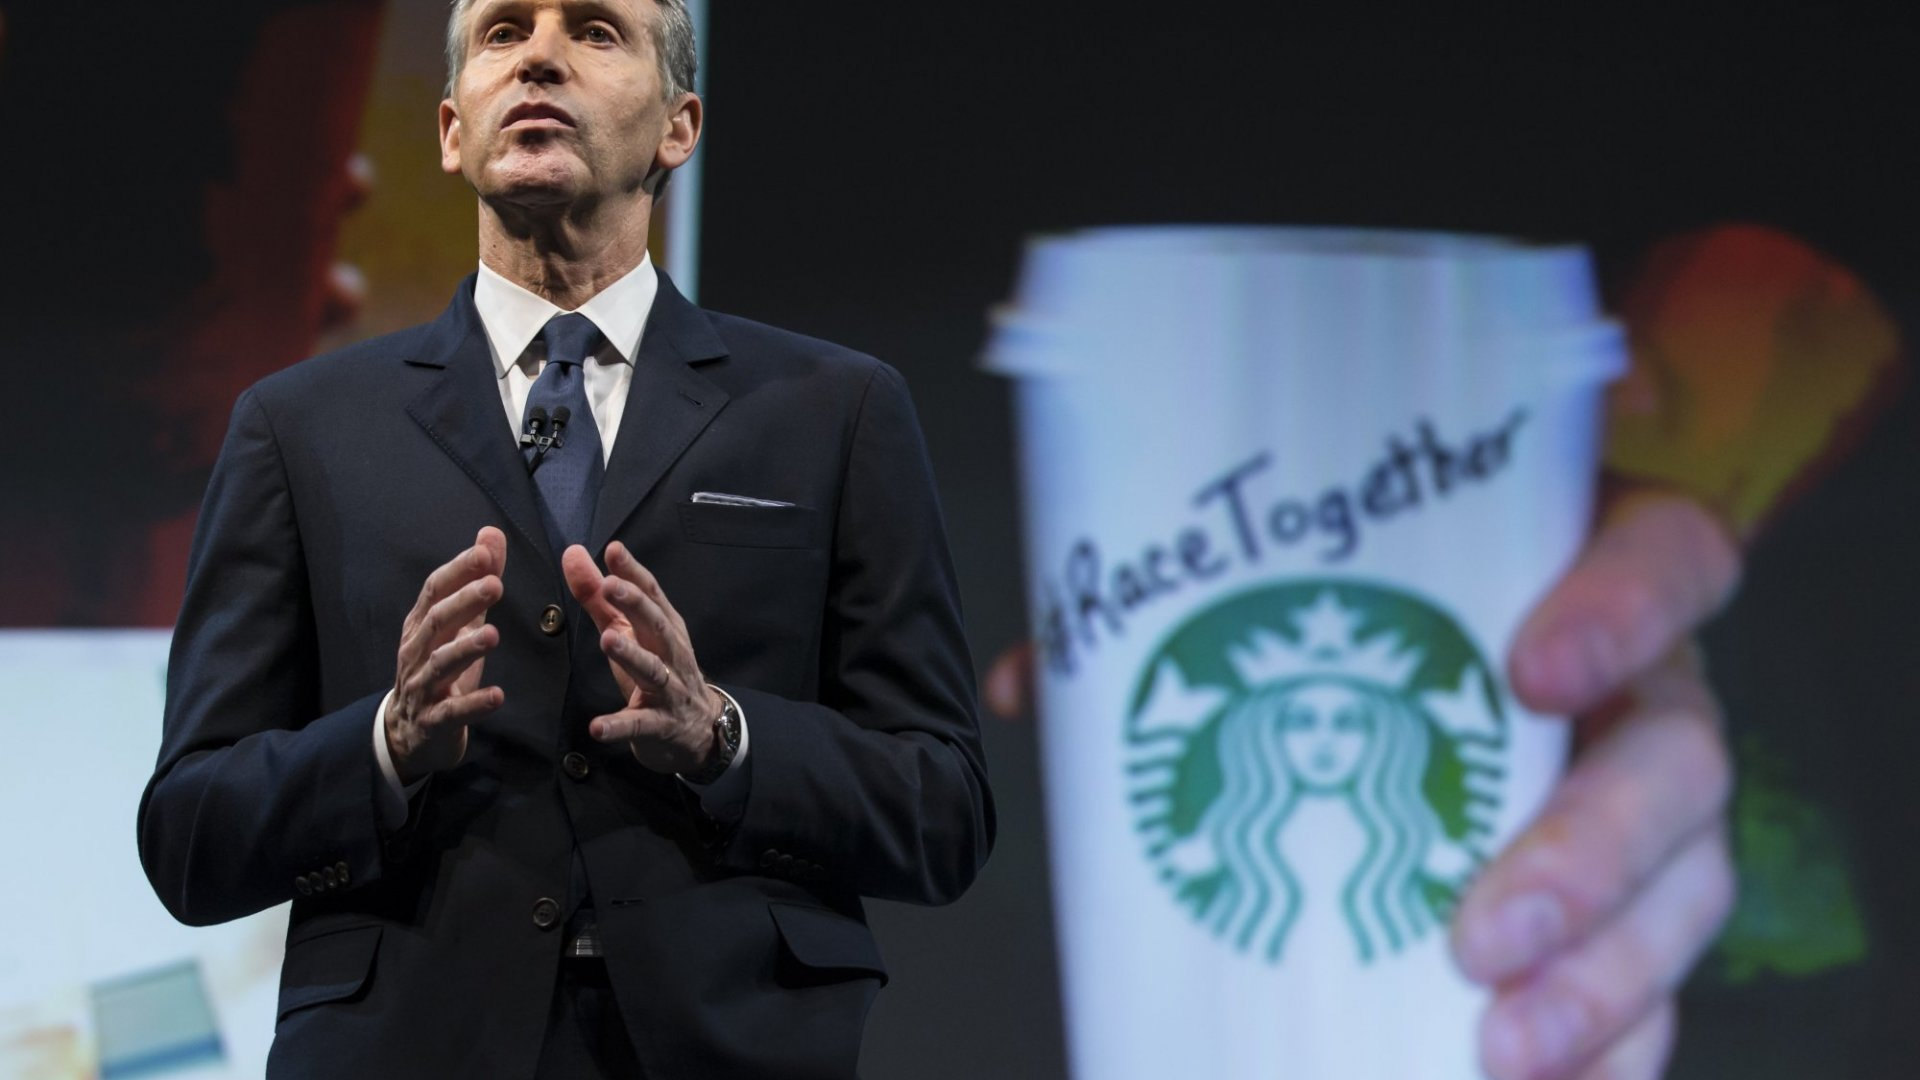 Starbucks Chairman and CEO Howard Schultz addressed the 'Race Together Program' during the Starbucks annual shareholders meeting on March 18 in Seattle. (Stephen Brashear/Getty Images)